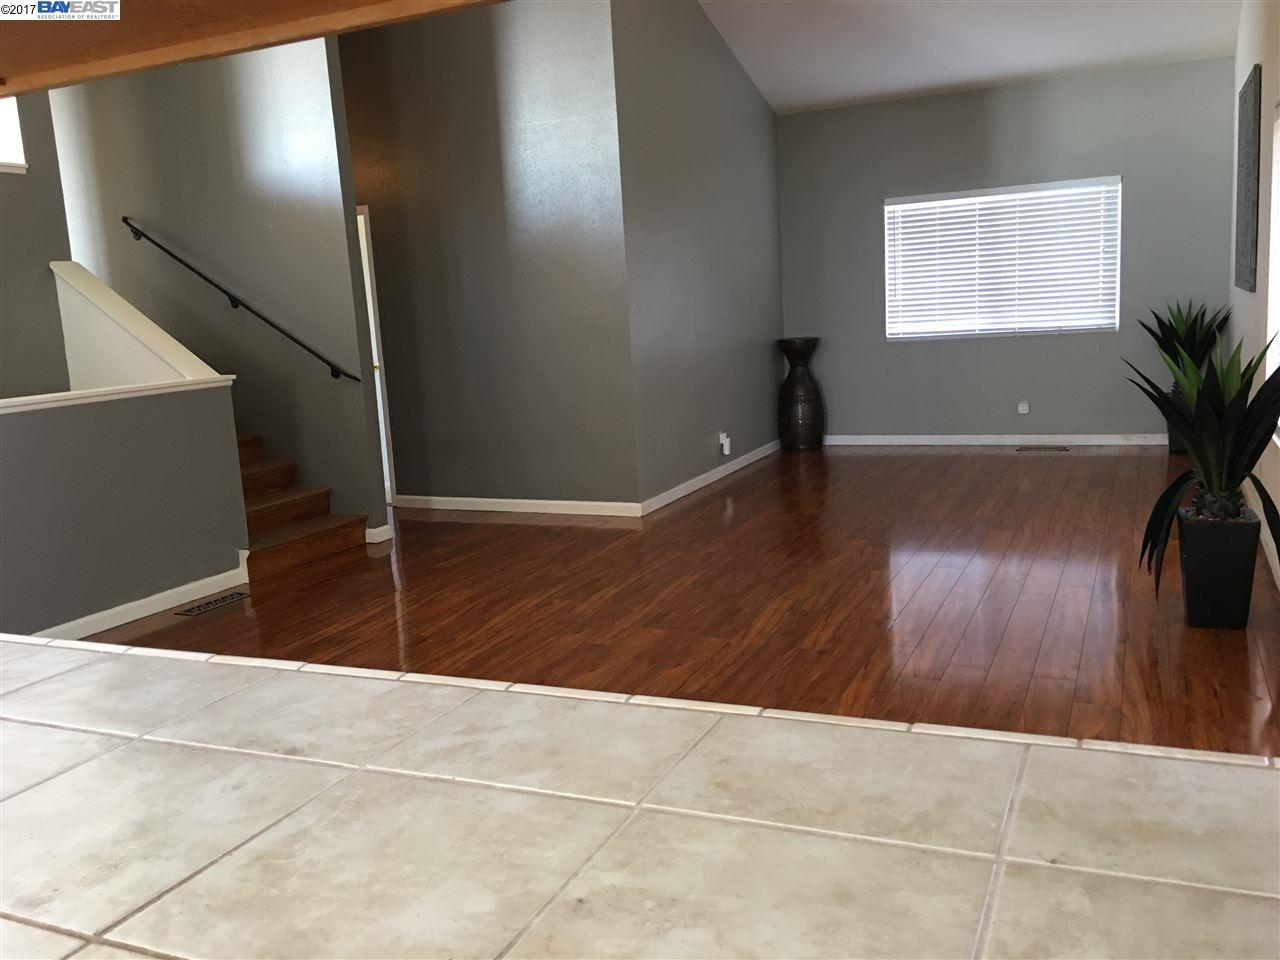 Additional photo for property listing at 2868 CHRONICLE AVENUE  Hayward, California 94542 Estados Unidos